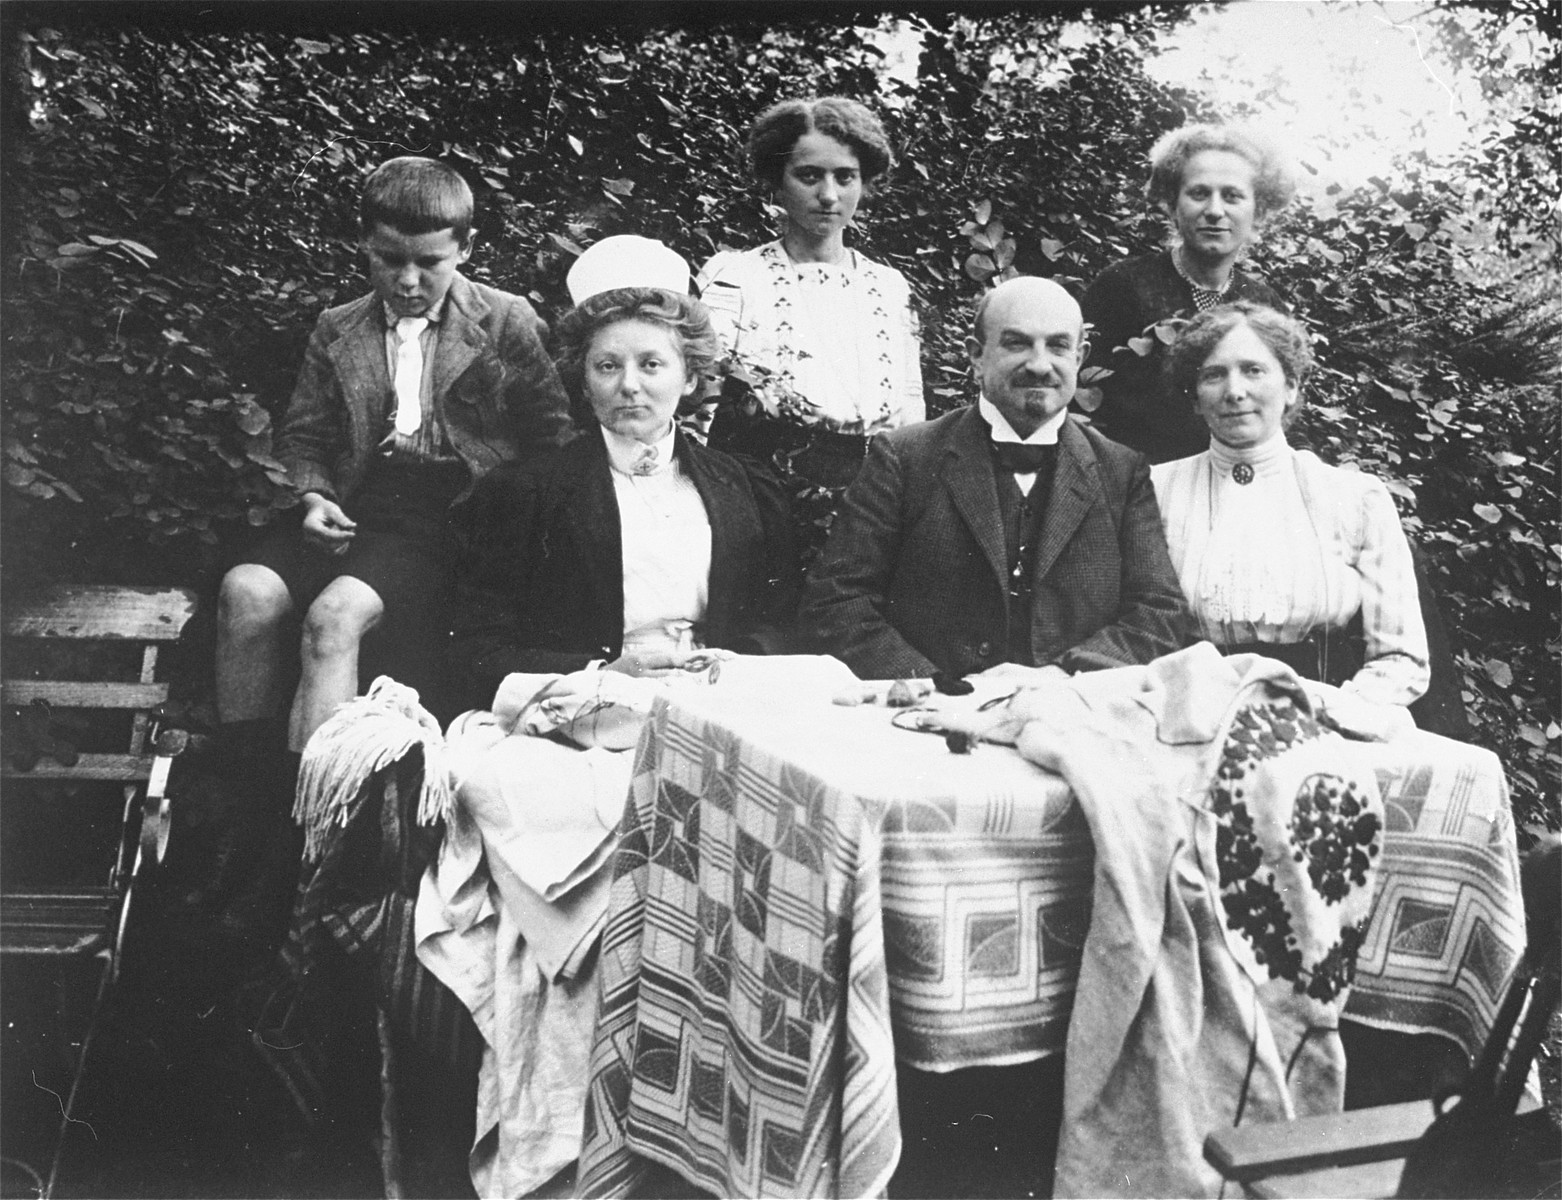 Members of the Gottschalk family sit at a table in the yard of their home in Schlawe, Germany.    Among those pictured are Gertrud Gottschalk (top row, second from the left; Kaethe Gottschalk (top row, third from the left).  Hugo and Bertha Gottschalk (seated at the right).